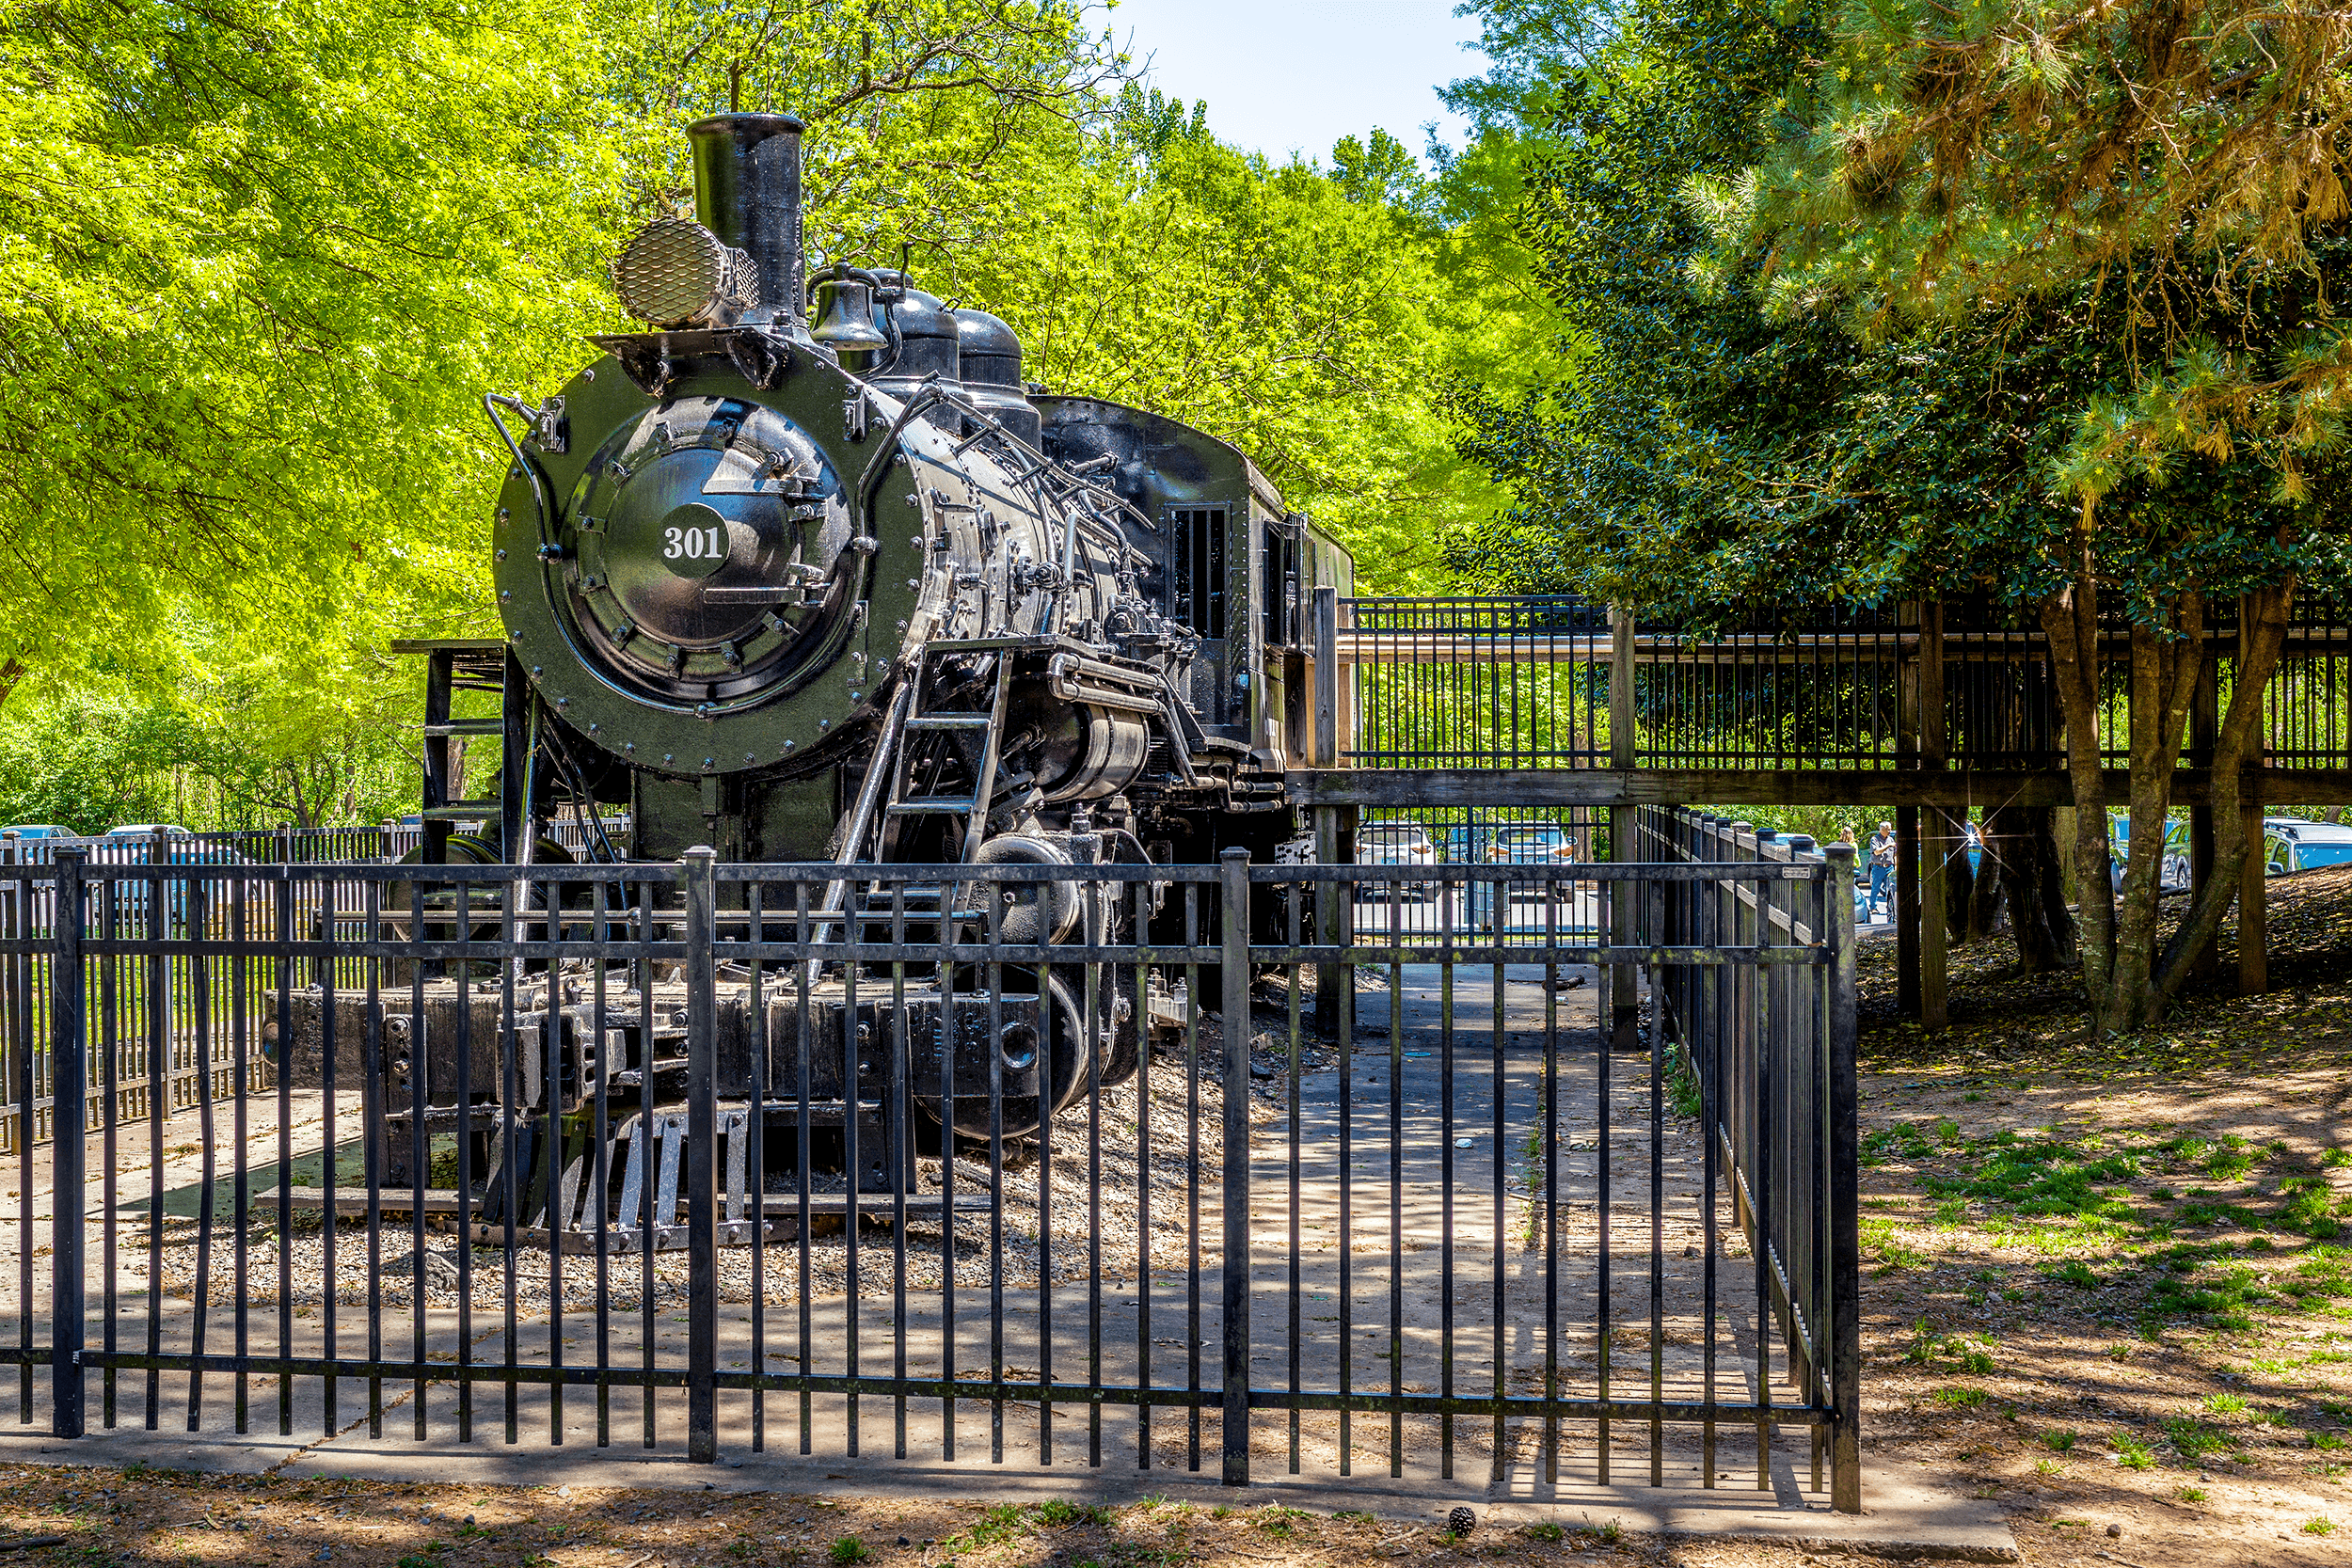 This original steam engine was built in 1920 and ran on the  Gainesville Midland Railroad  in Georgia and was one of the last steam locomotives in regular service in this part of the country.